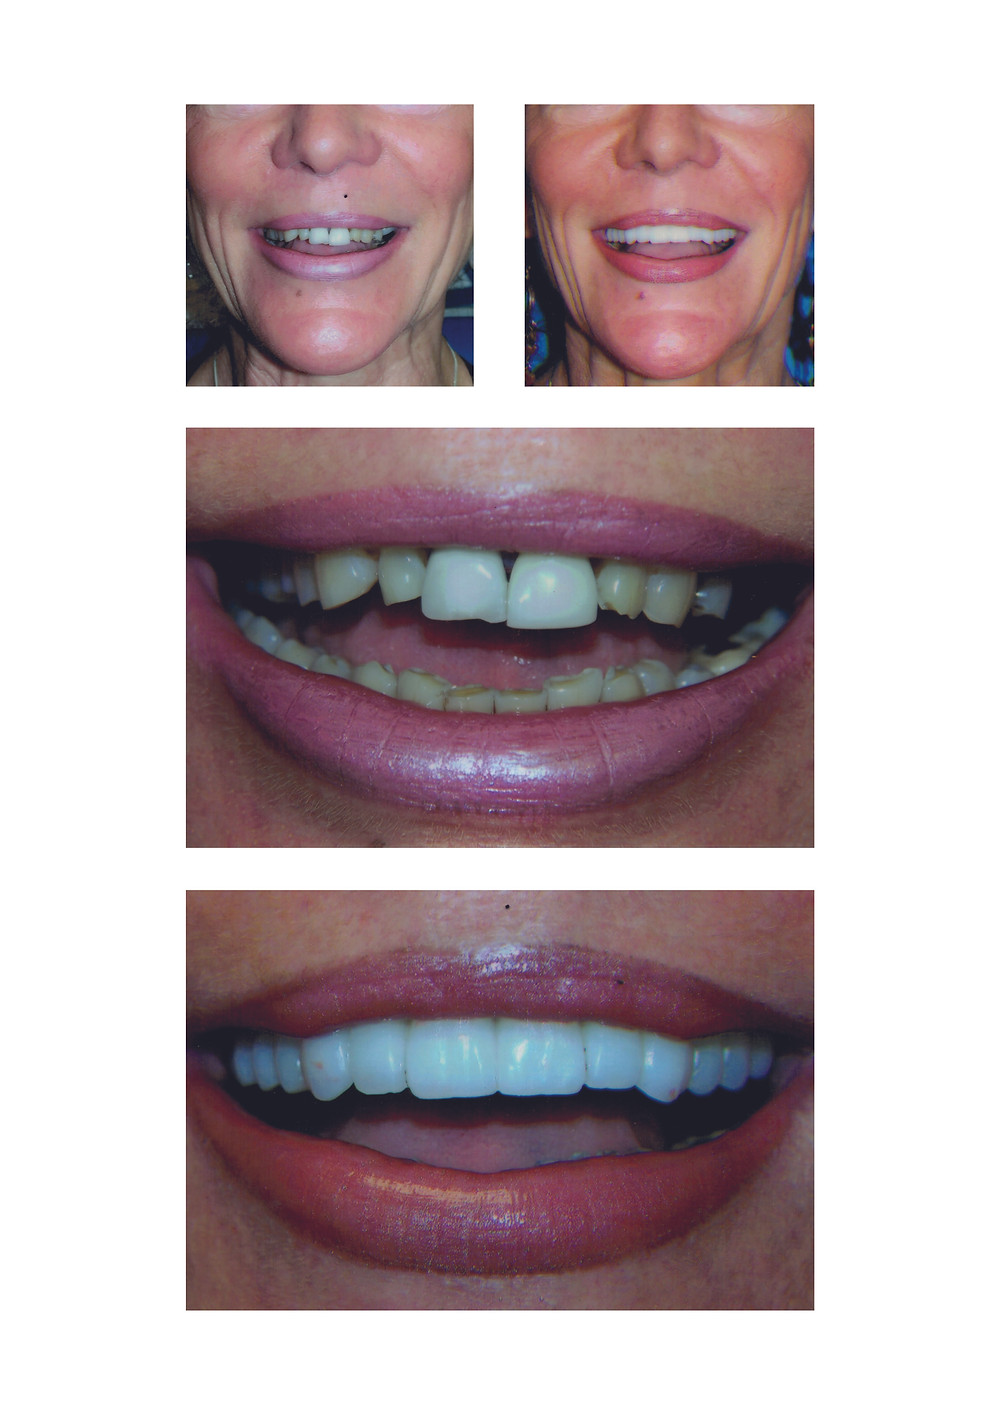 Before and after images of treatment with Dr Sanjiv Rikhi